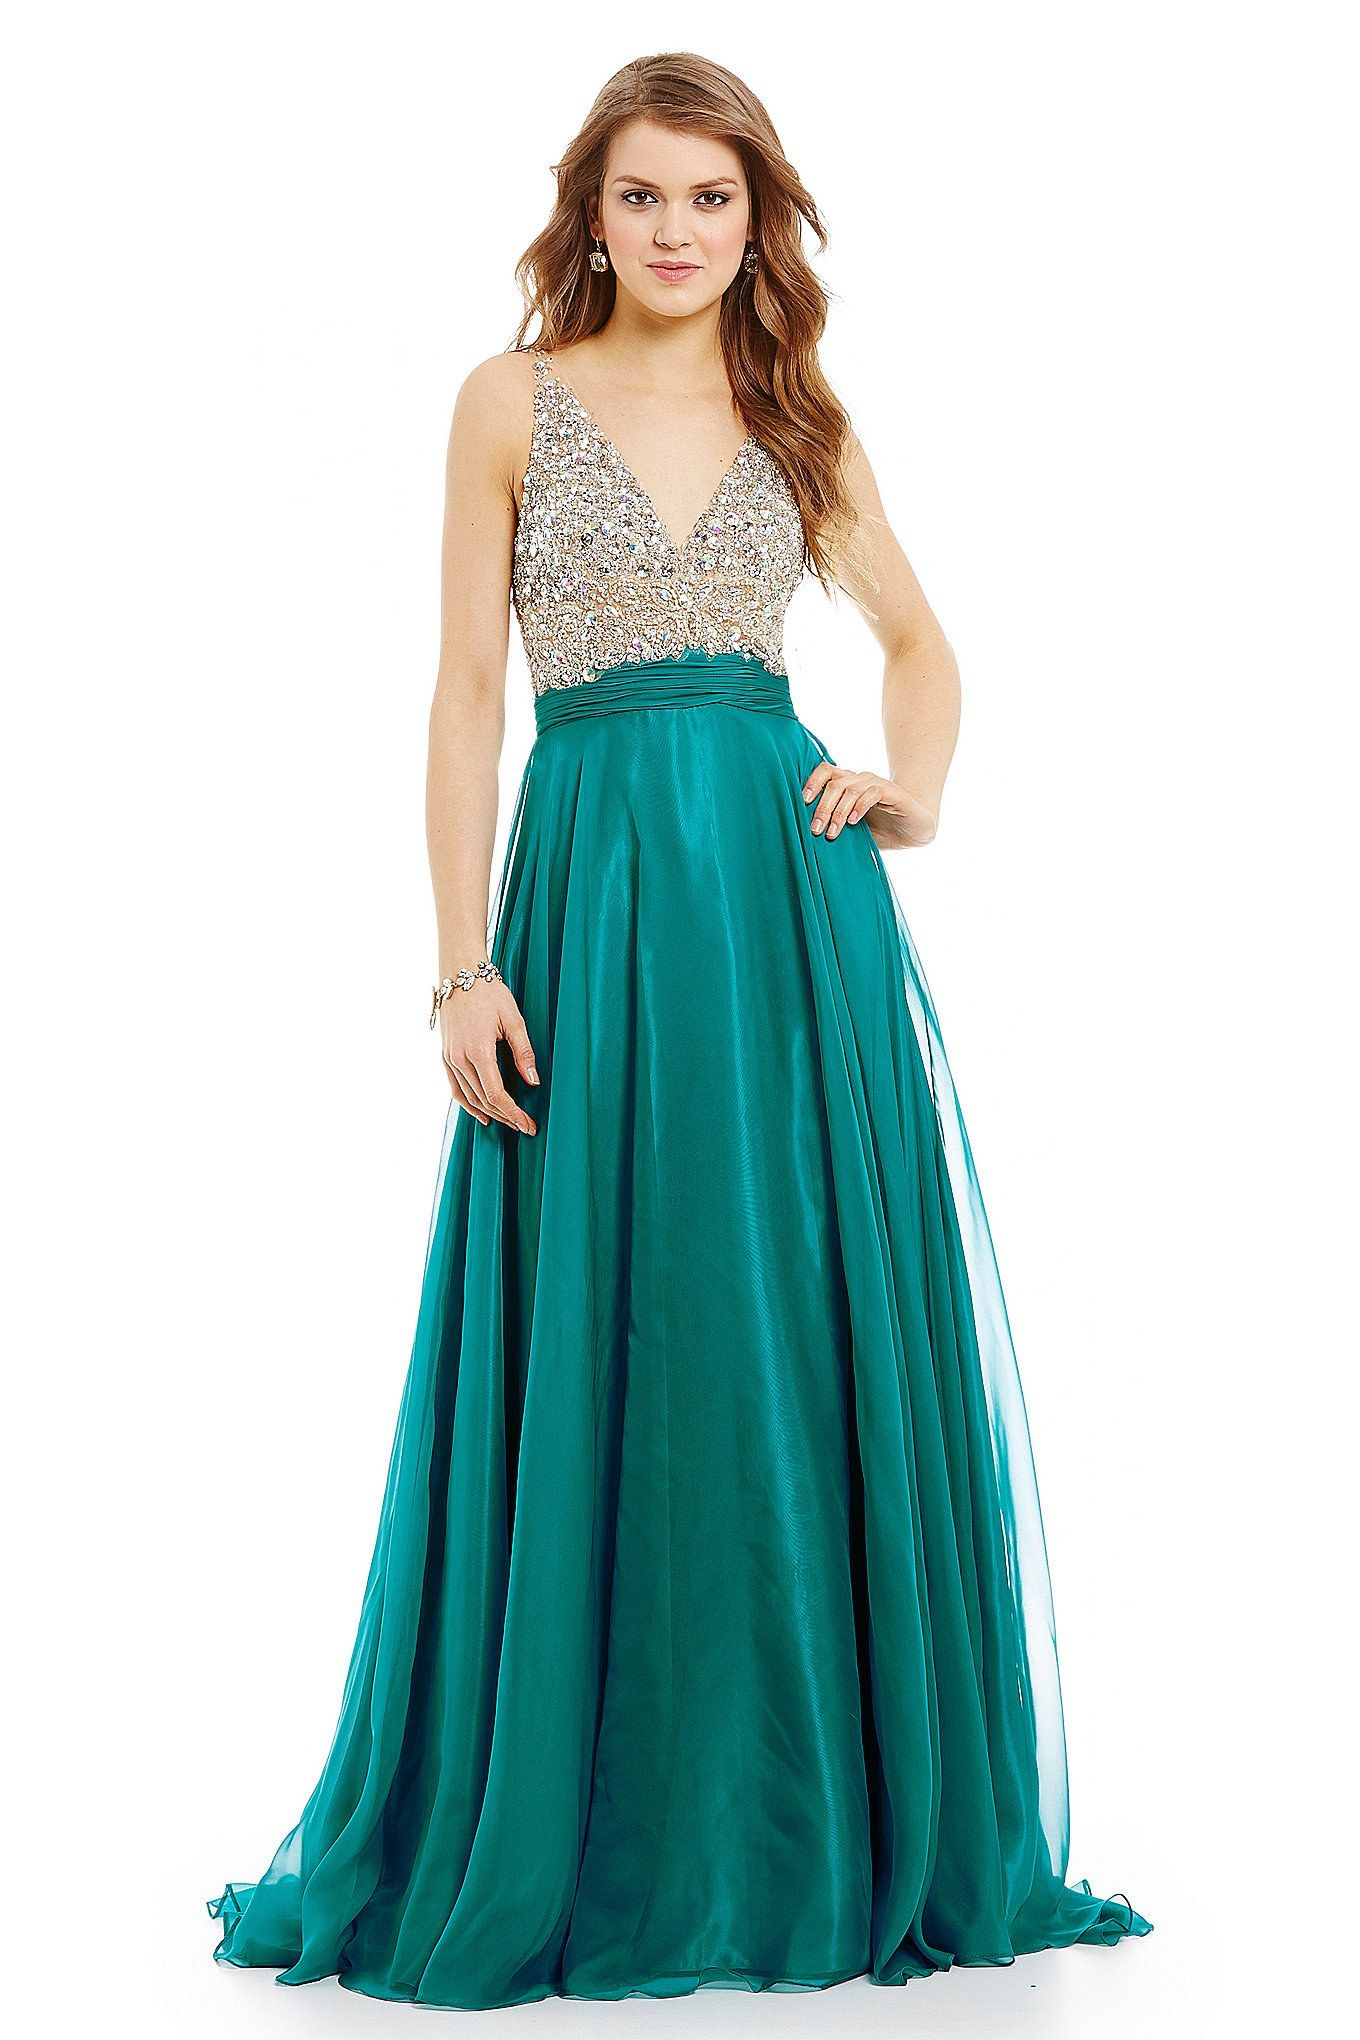 ad82bc77853 The 100 Coolest Dresses to Wear to Prom This Year. Best Prom Dresses 2016 –  Formal Dresses for Prom